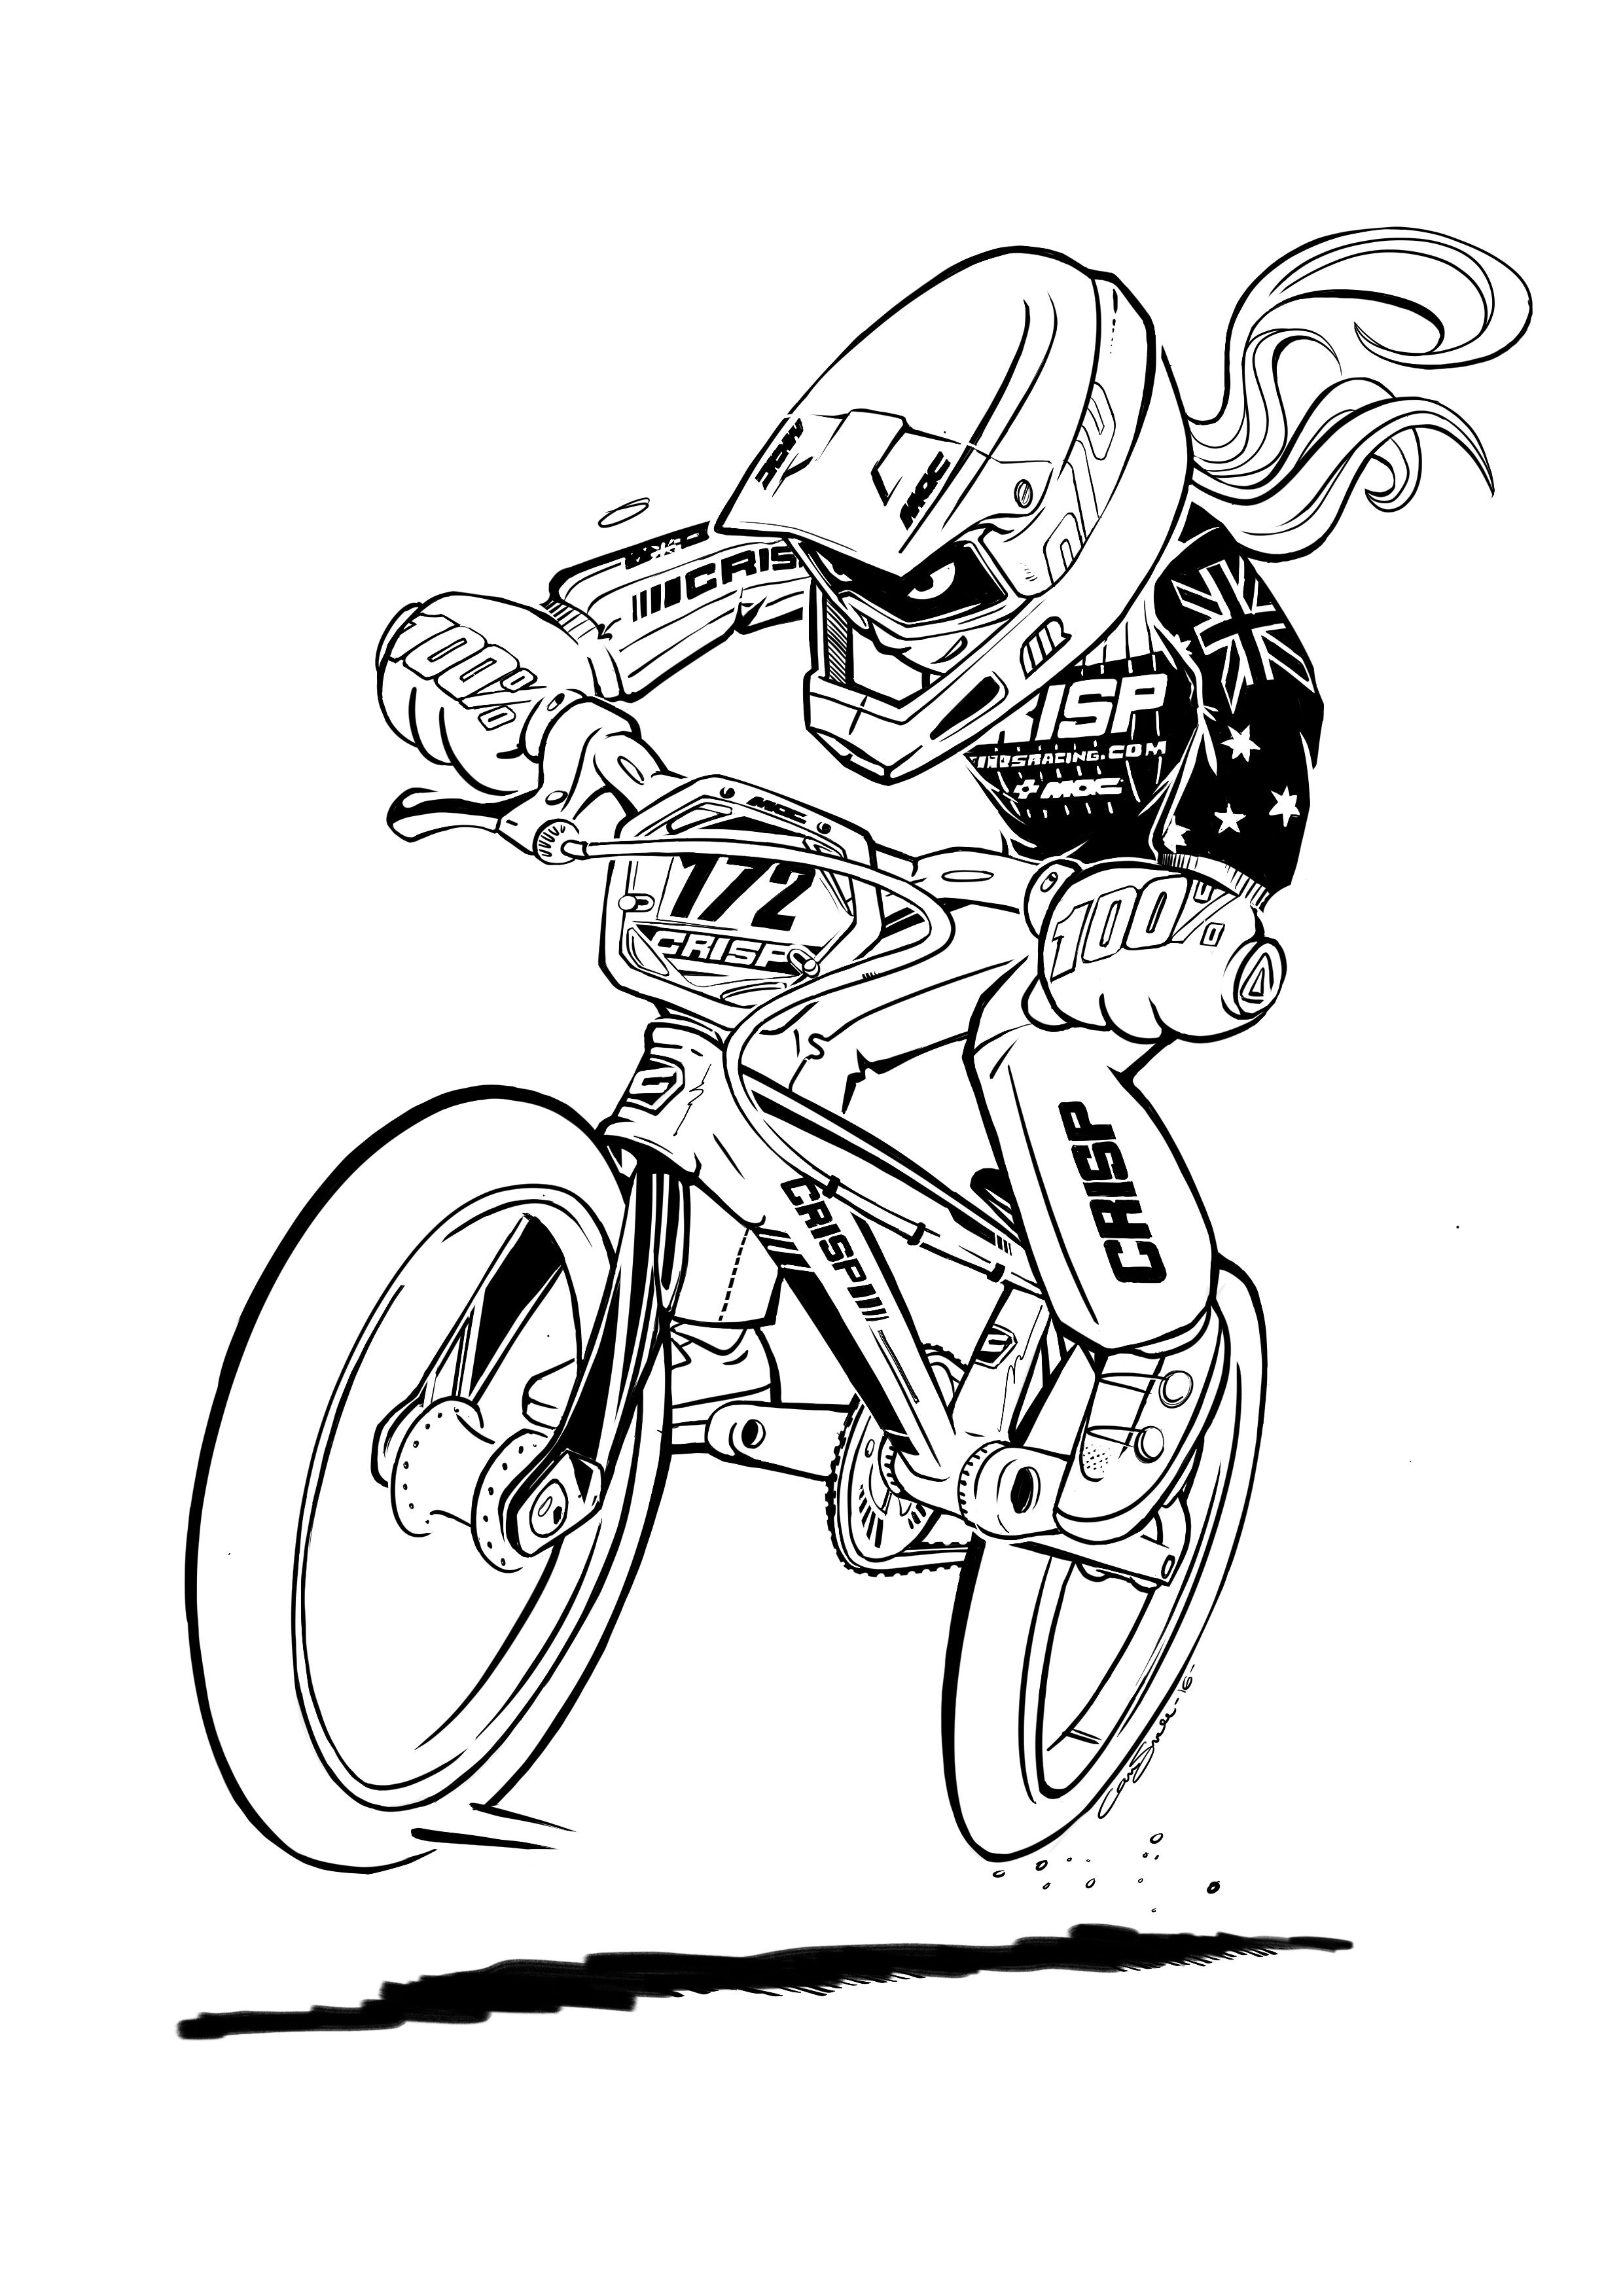 BMX Illustration by Cam Small | Drawing & Designs | Pinterest ...